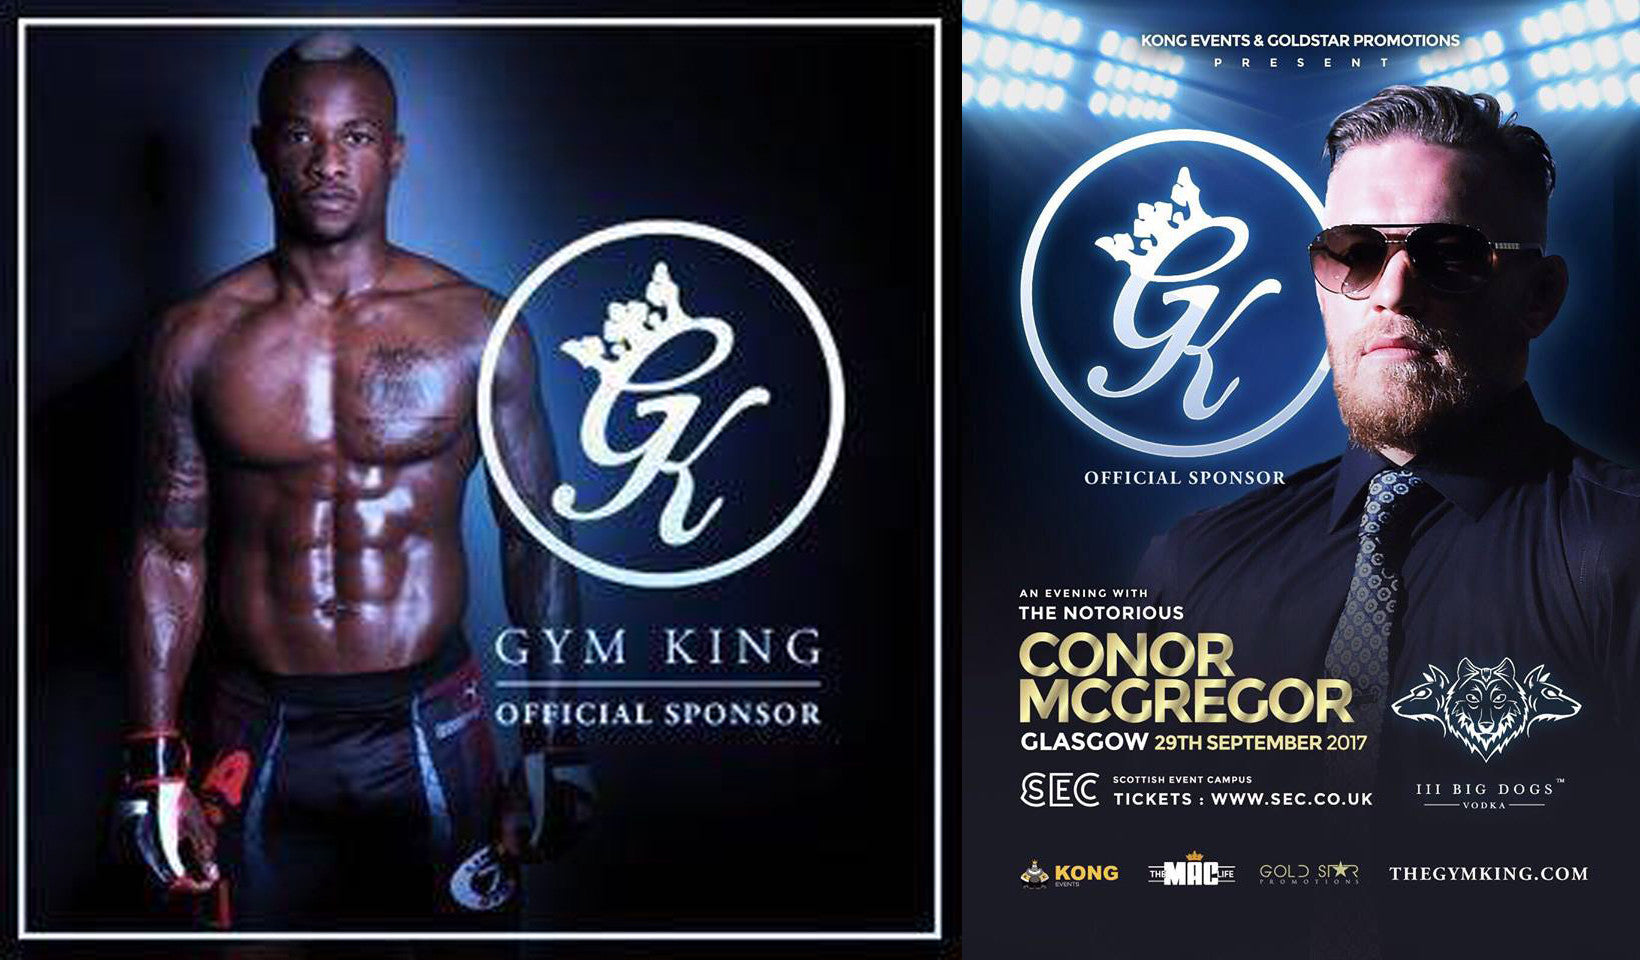 Heavy Duty Fighter Marc Diakiese joins Connor McGregor as brand ambassador for Gym King